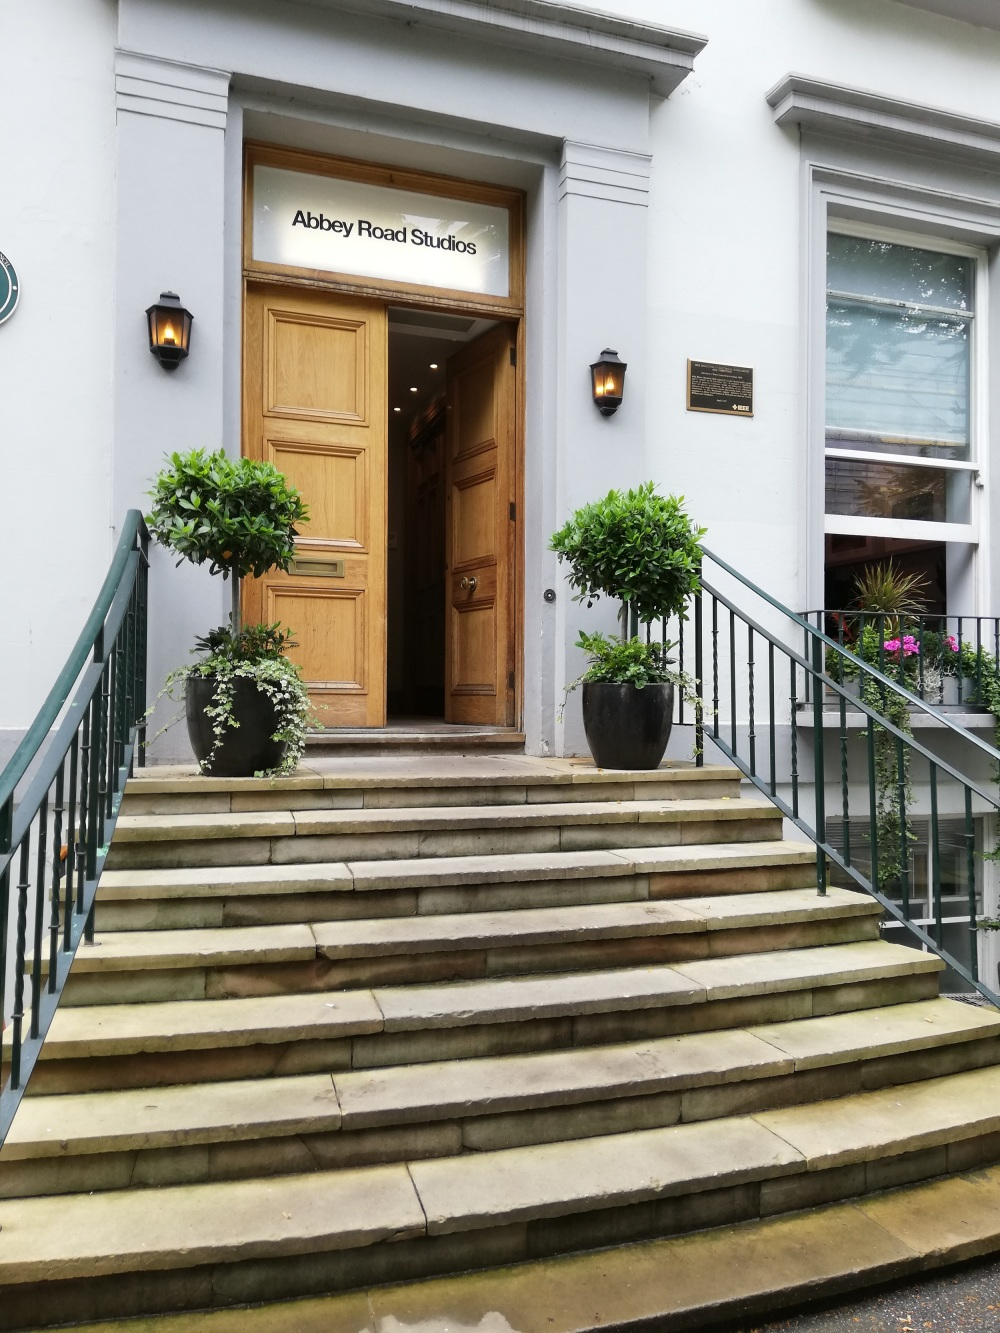 The infamous Abbey Road Studios in London